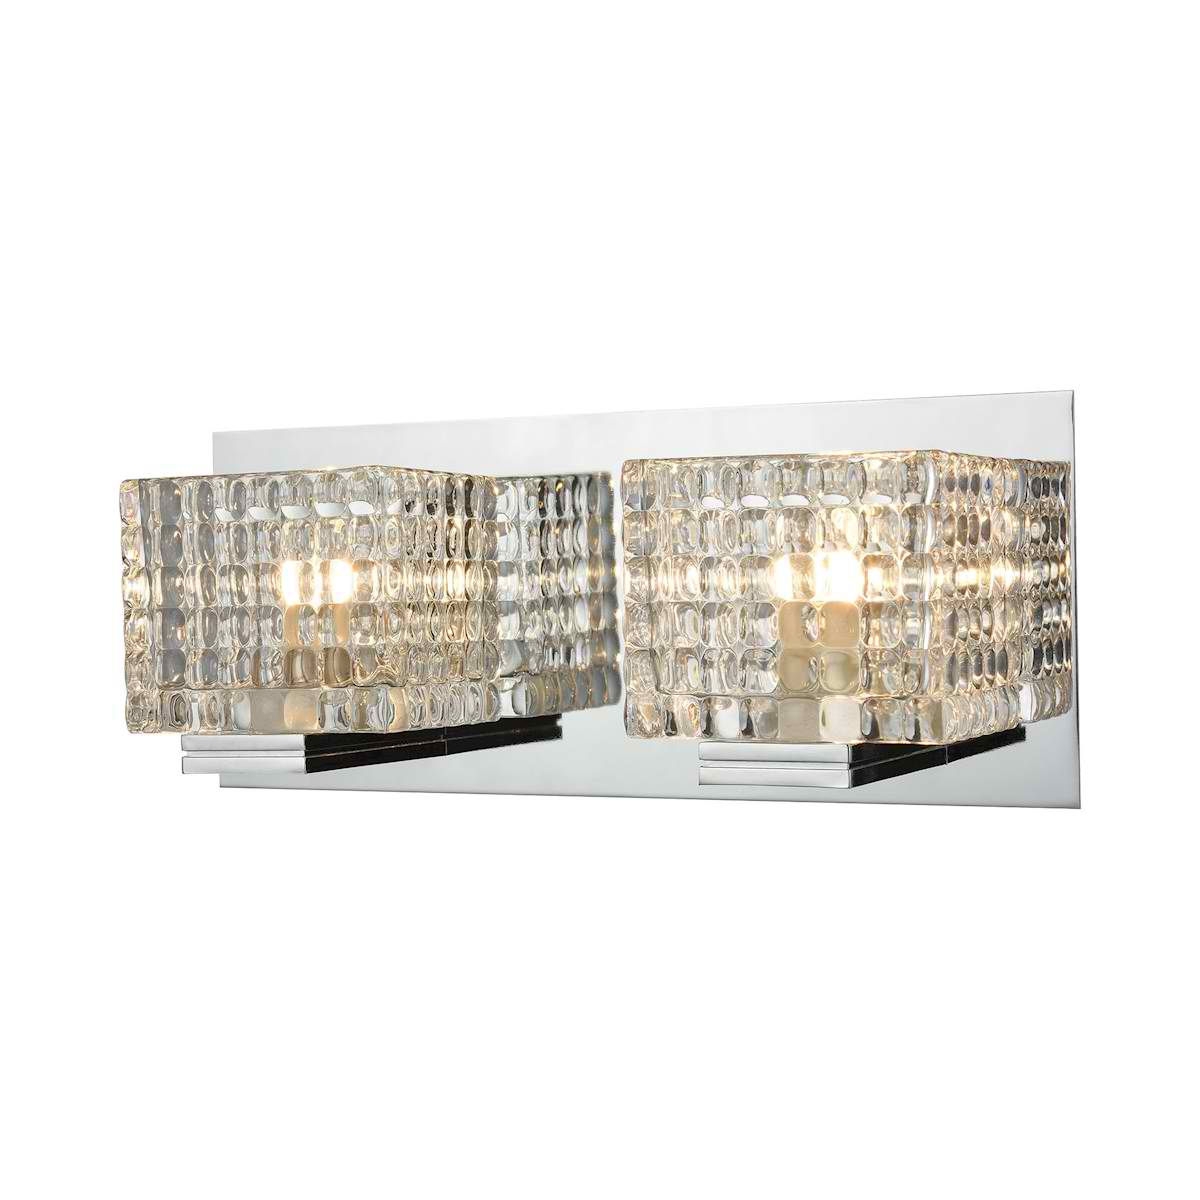 2 Light Vanity in Chrome and Clear Glass